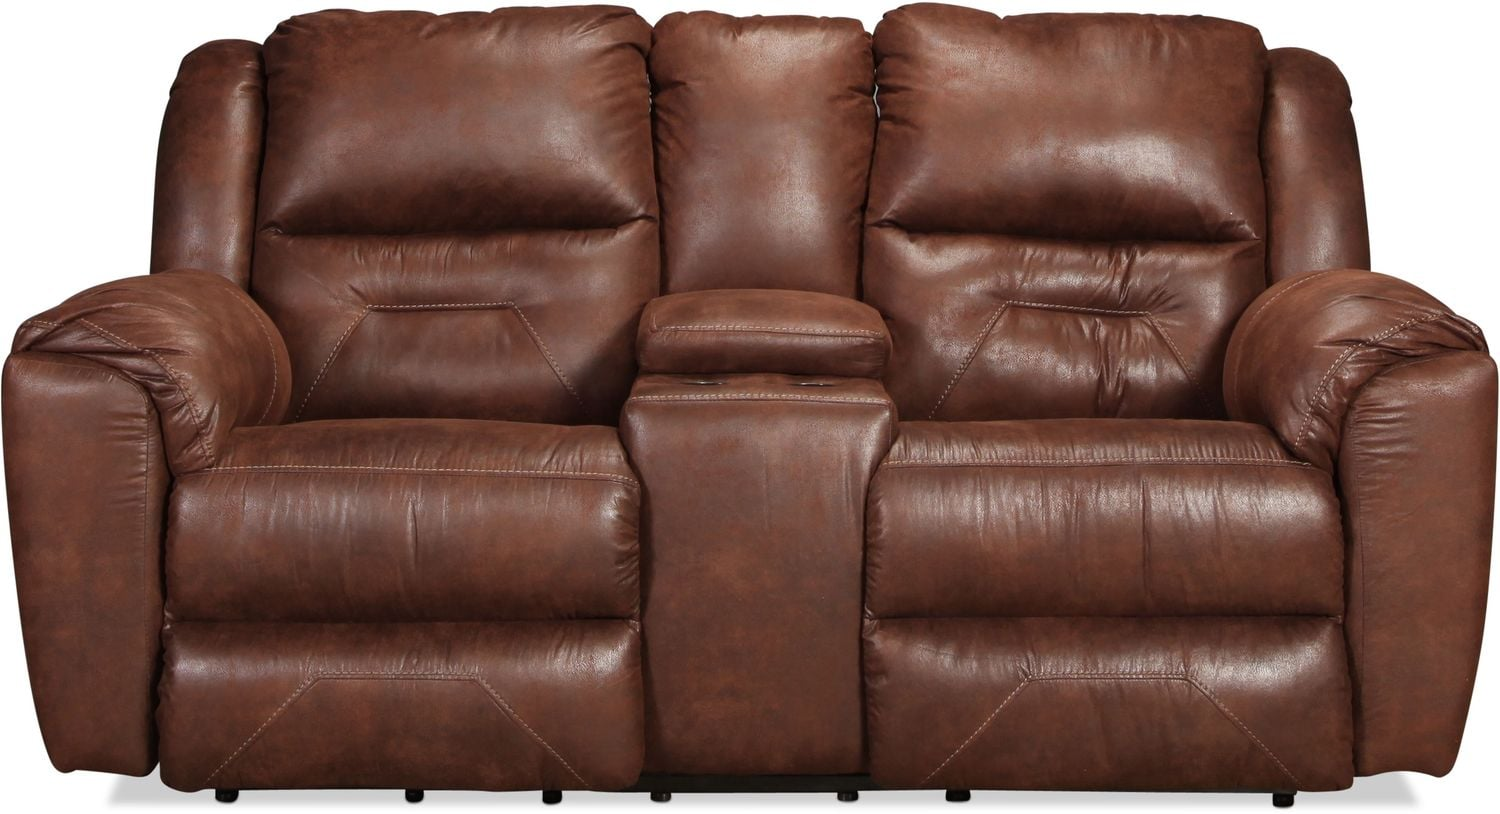 Morel Power Reclining Sofa with Console - Mocha